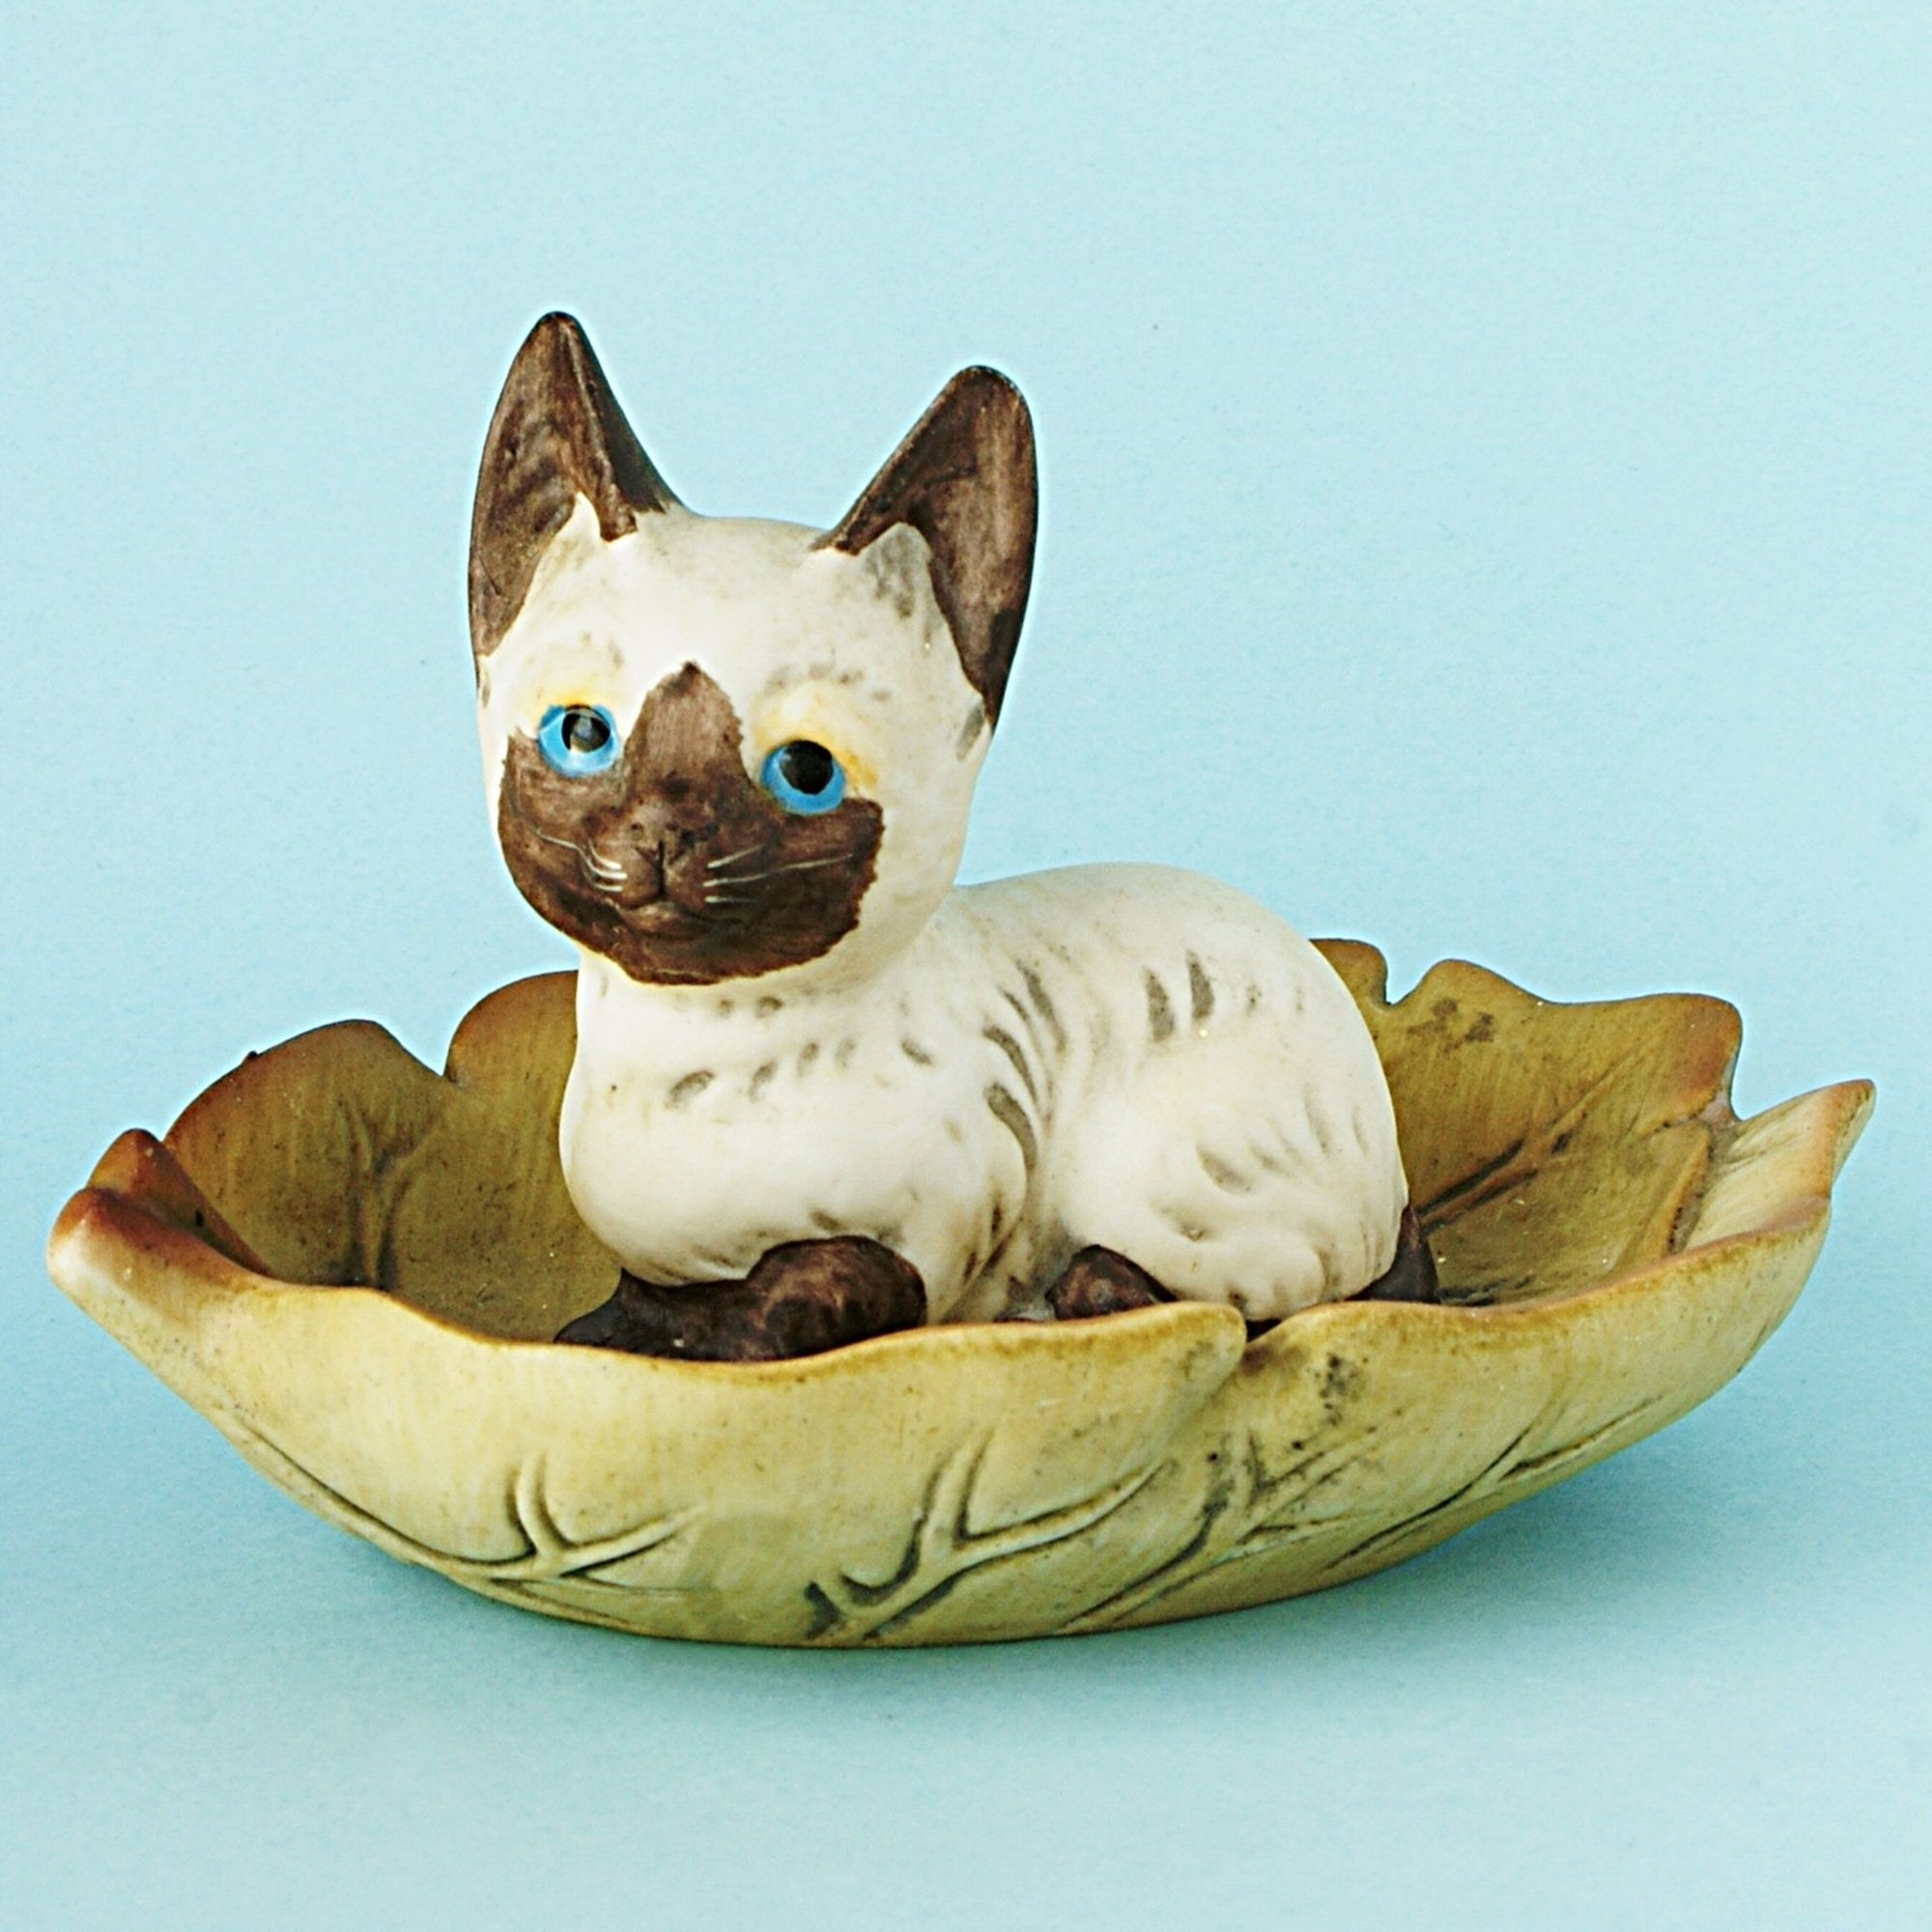 Vintage Pottery Siamese Kitten Cat Lying On Two Leafs Made By J R International Porcelain And Pottery Made In The Uk Ci Vintage Pottery Pottery Siamese Cats